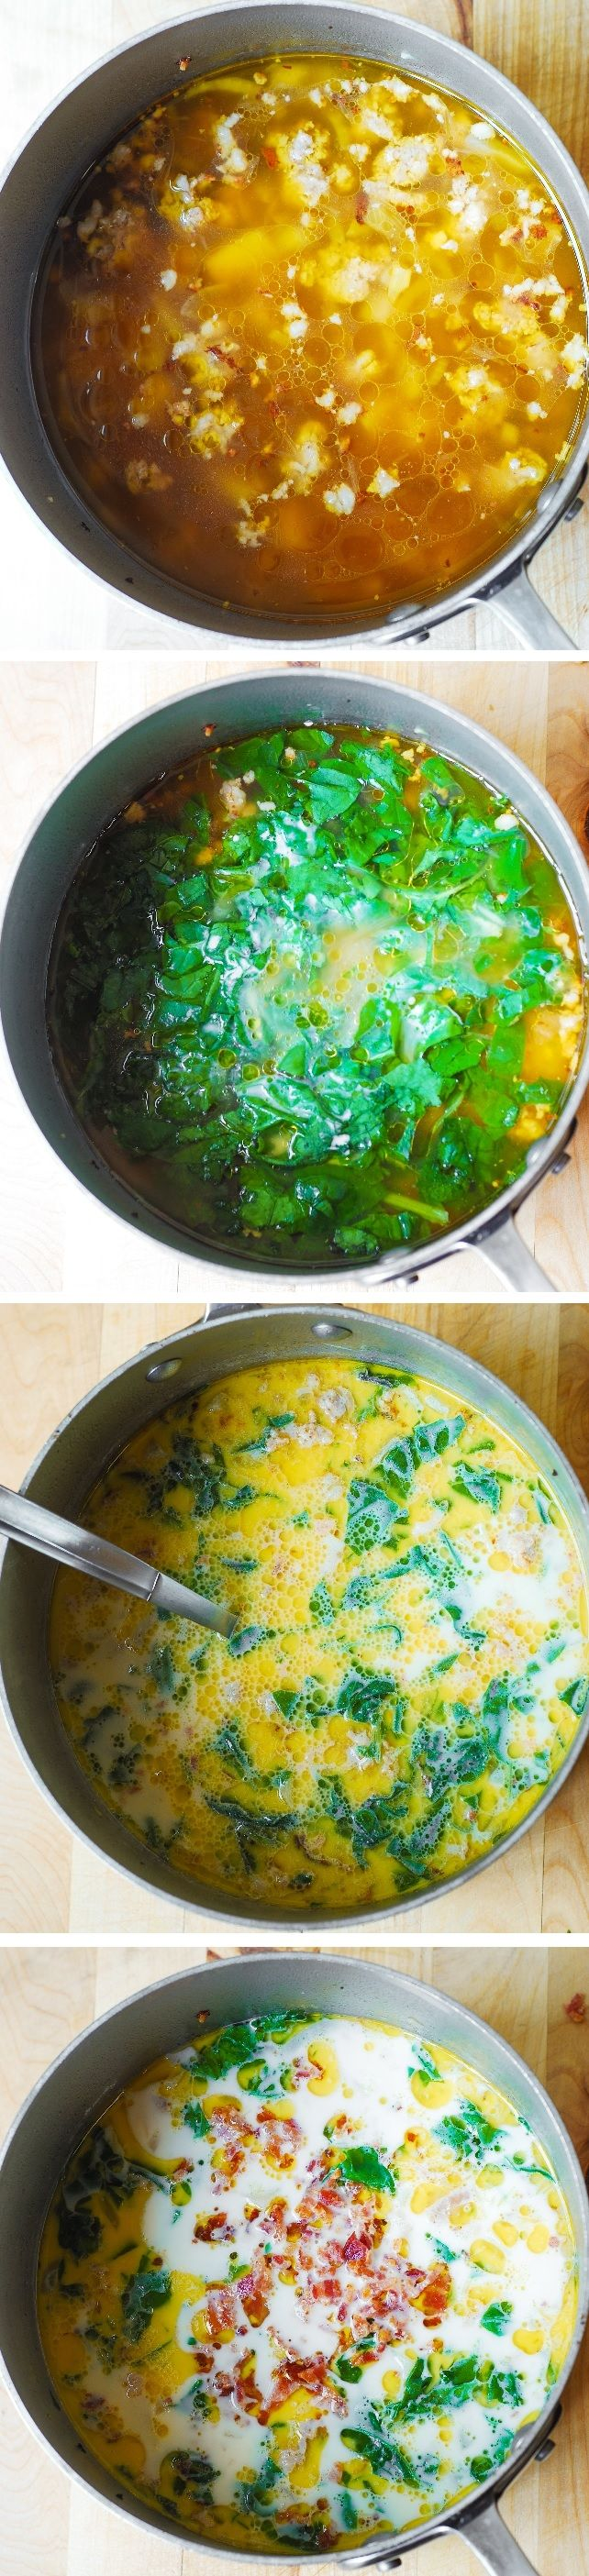 Olive Garden S Zuppa Toscana Soup With Swiss Chard Recipe Gardens Italian Sausages And